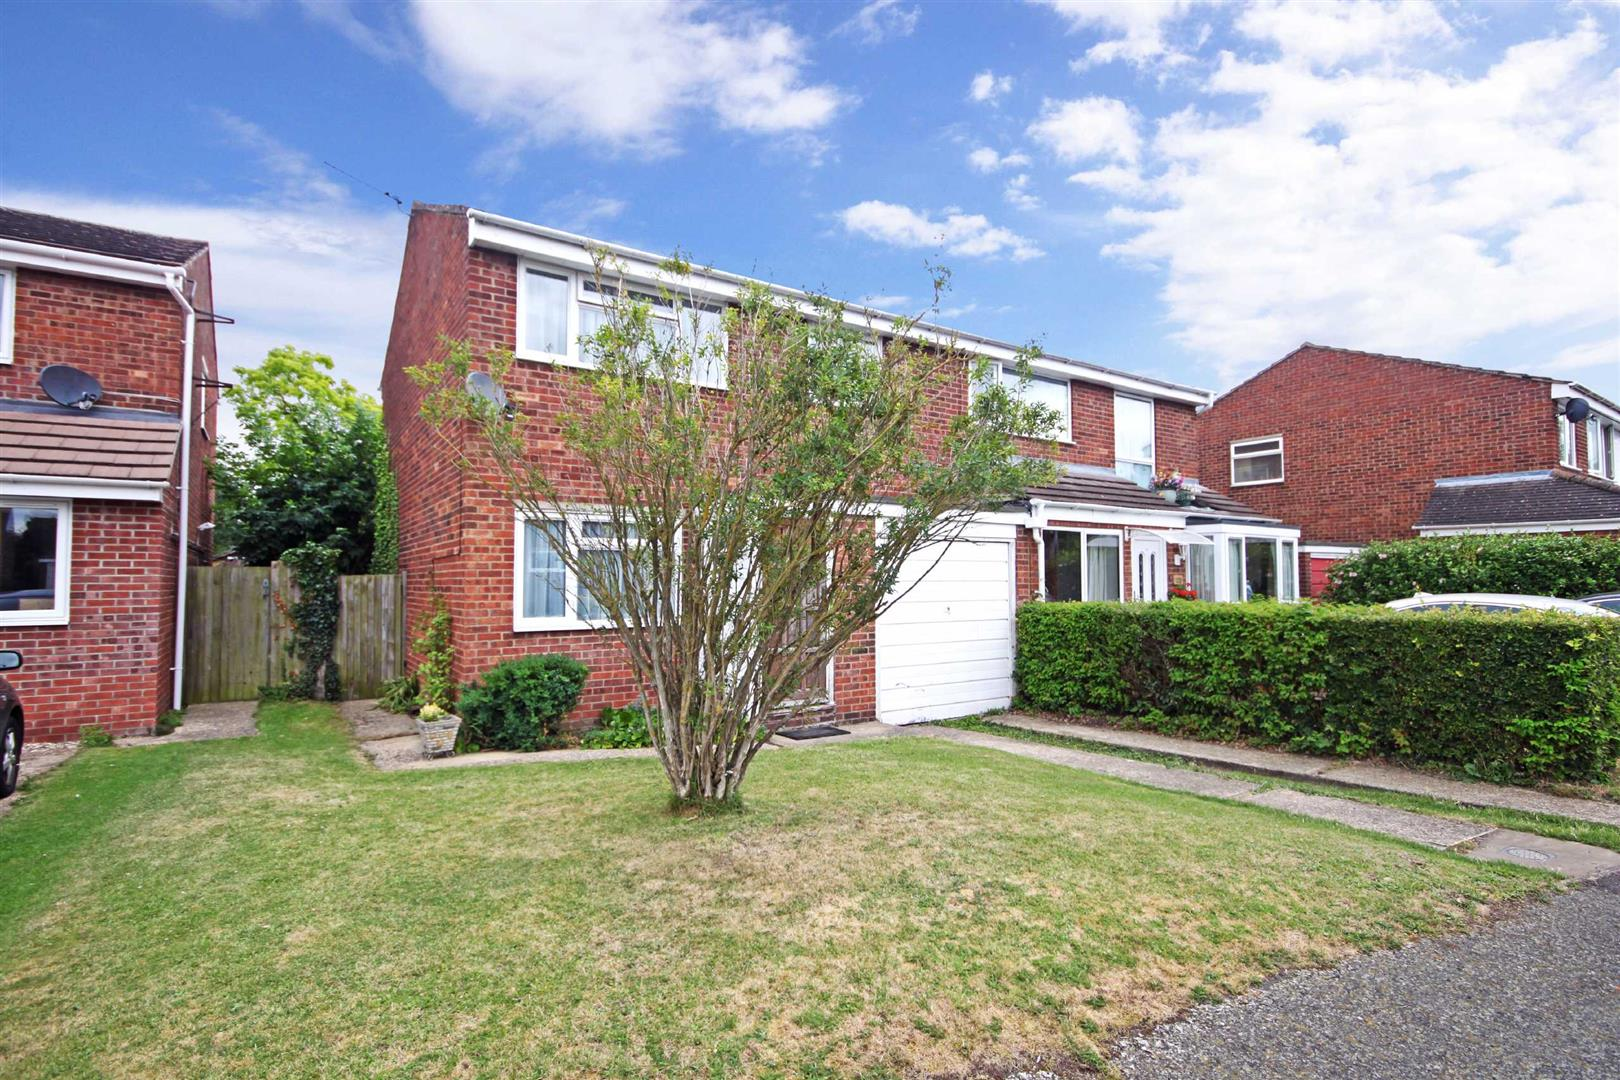 3 Bedrooms Semi Detached House for sale in Marks Way, Girton, Cambridge